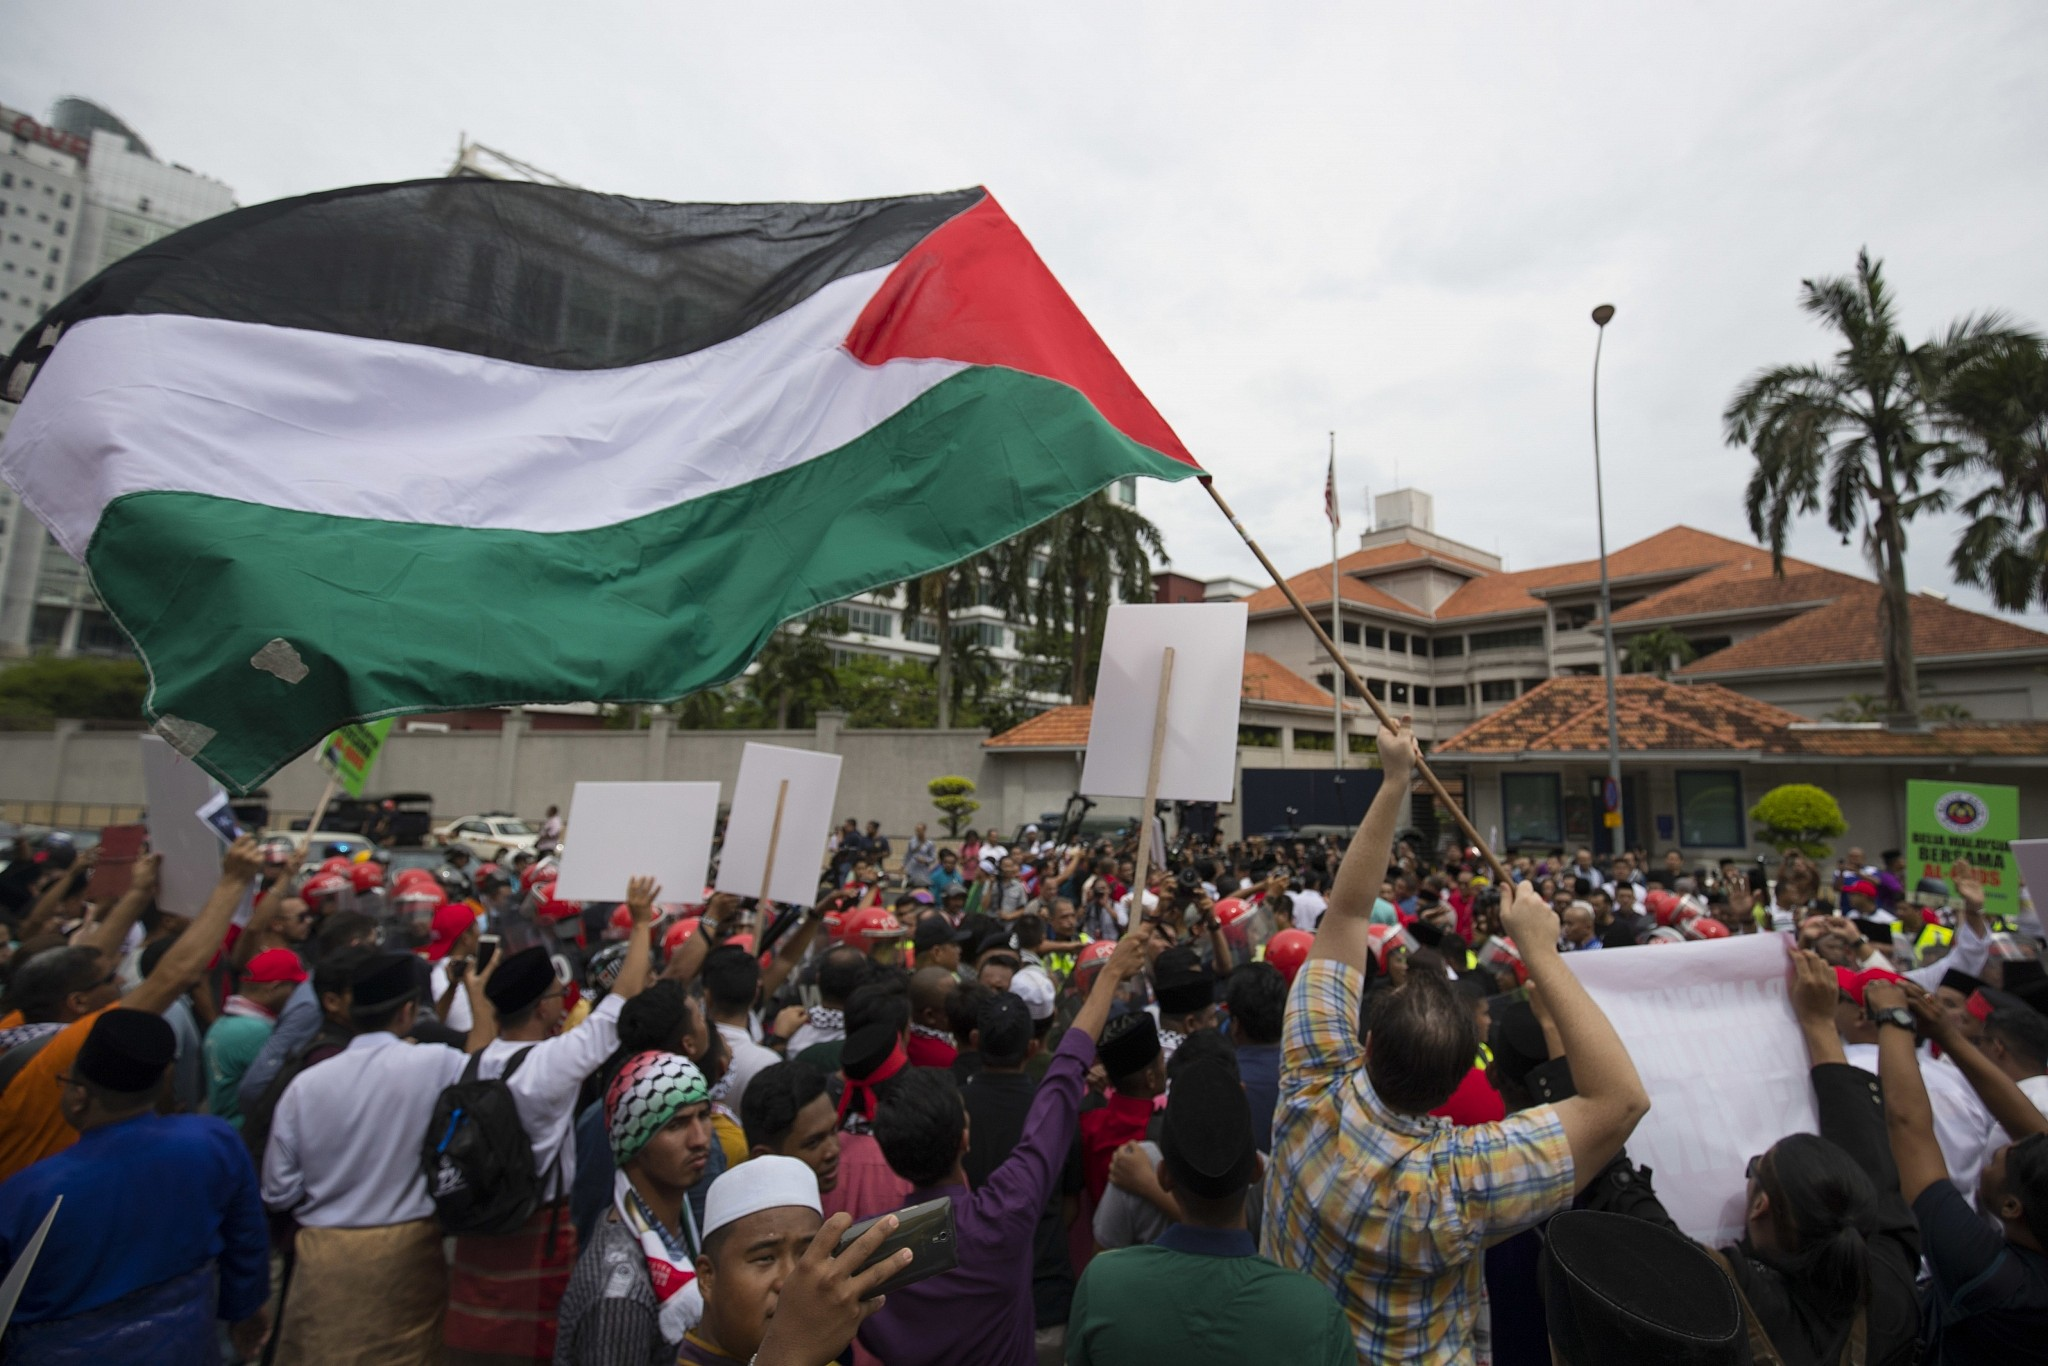 Muslim malaysia rejects criticism over israeli visit the times protesters wave palestinian flags during a protest outside the us embassy in kuala lumpur malaysia stopboris Images